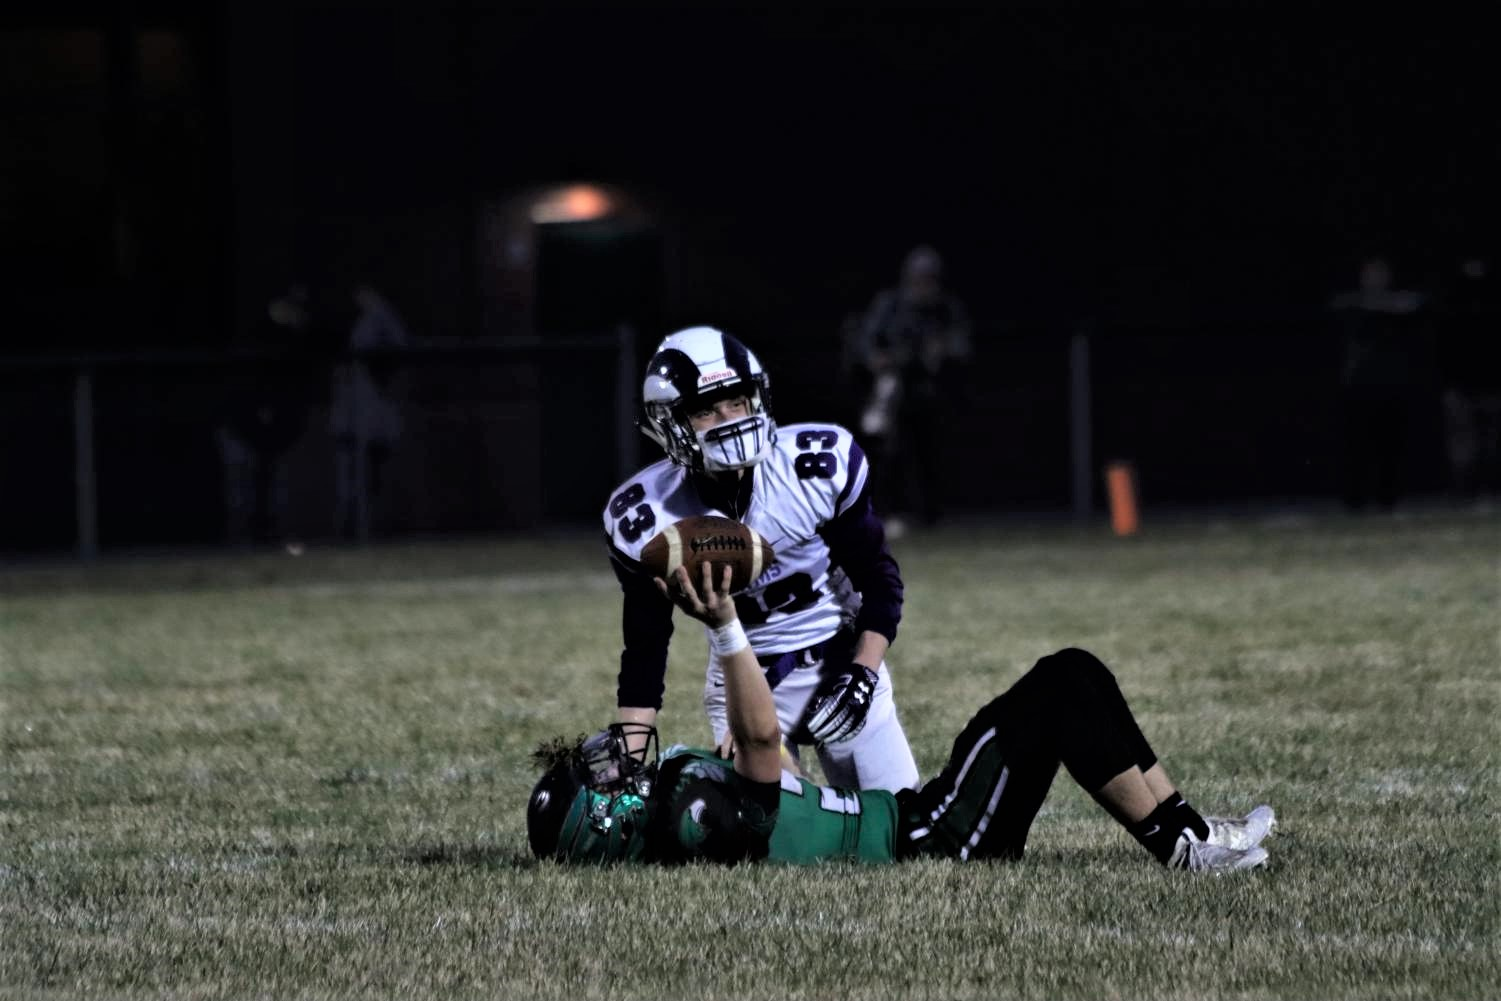 Number 21 Lucas Clapp catches the ball and is tackled at the 35 yard line. The team then ran it 21 yards more.